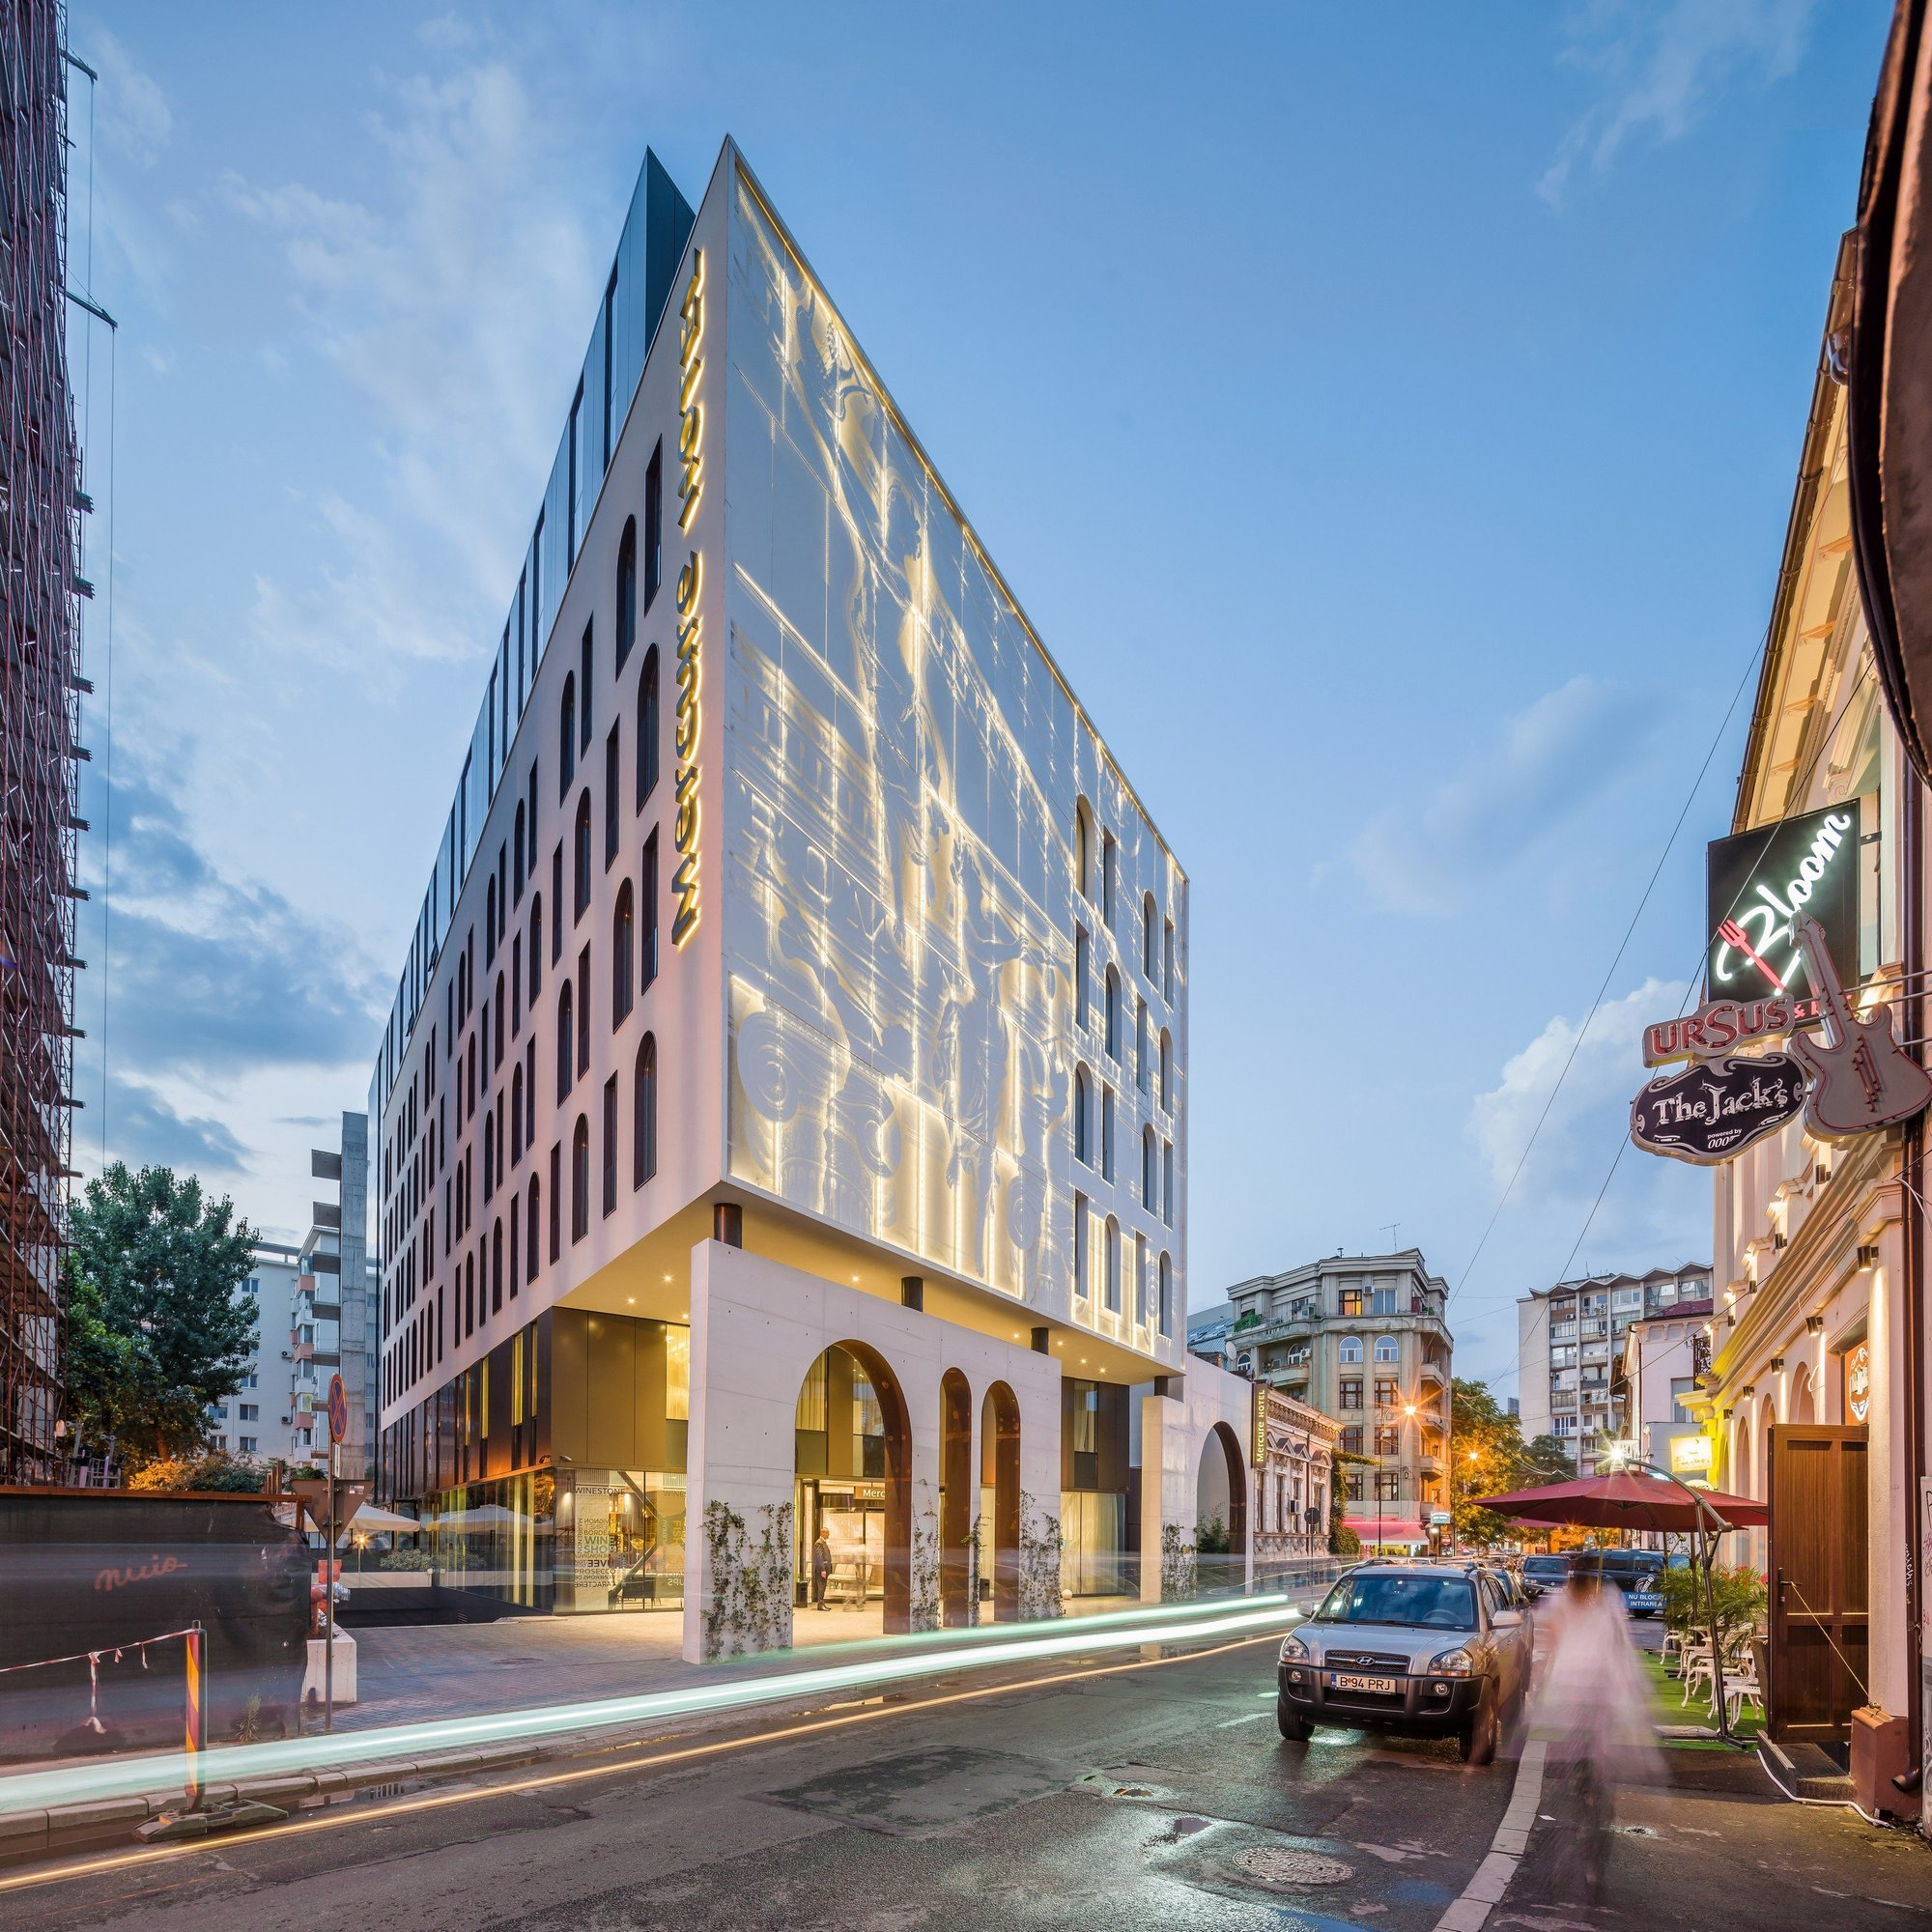 Hotel Mercure In Bucharest Arhi Group Archdaily